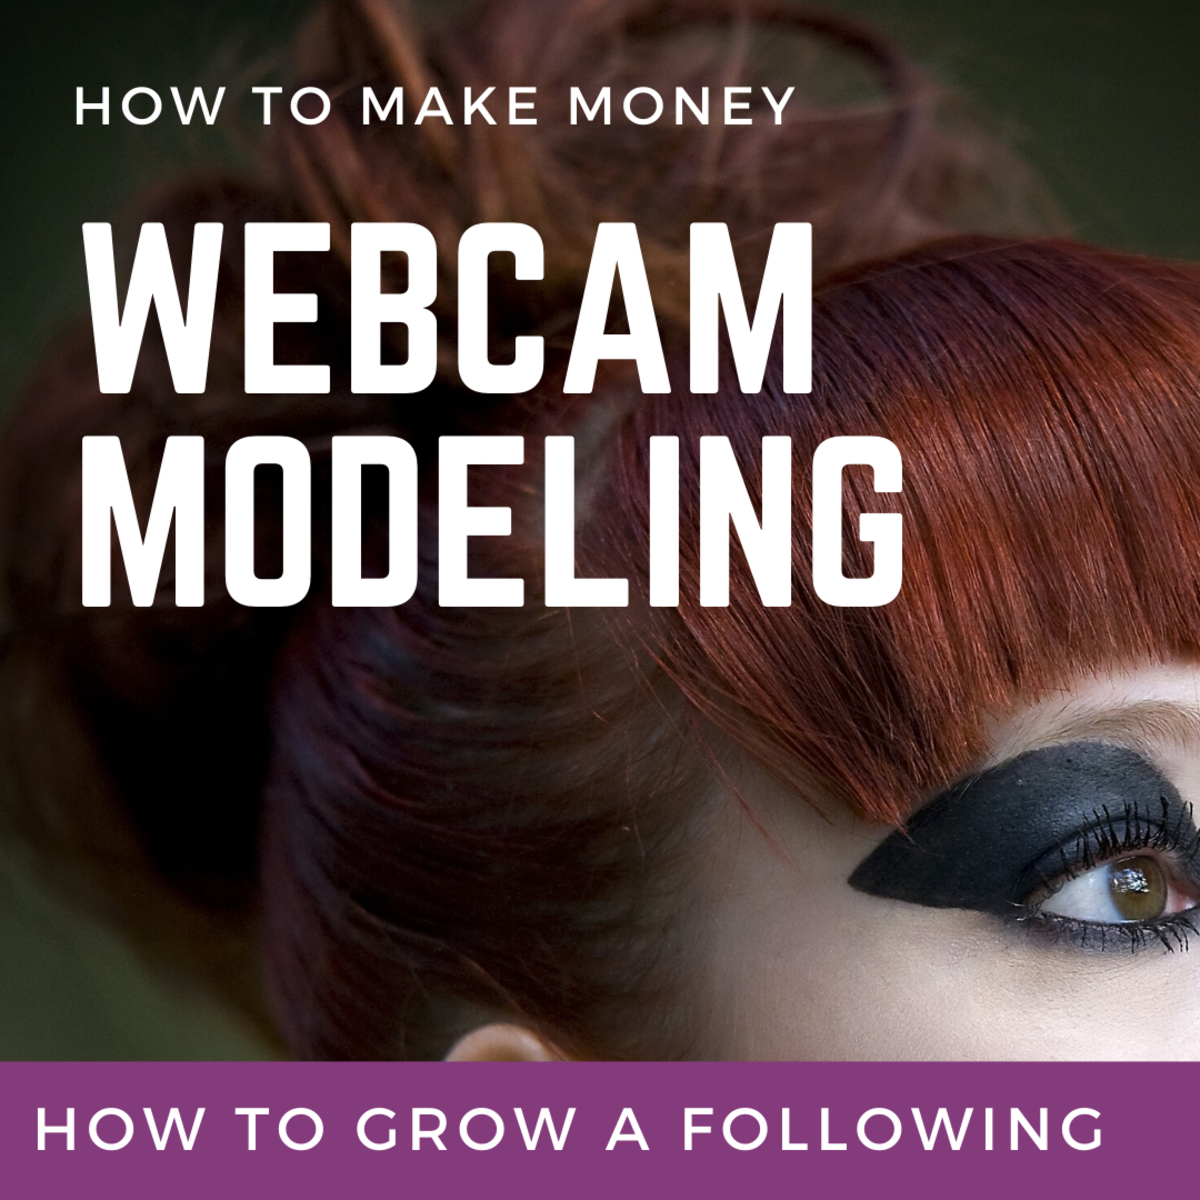 How to Make Money Webcam Modeling